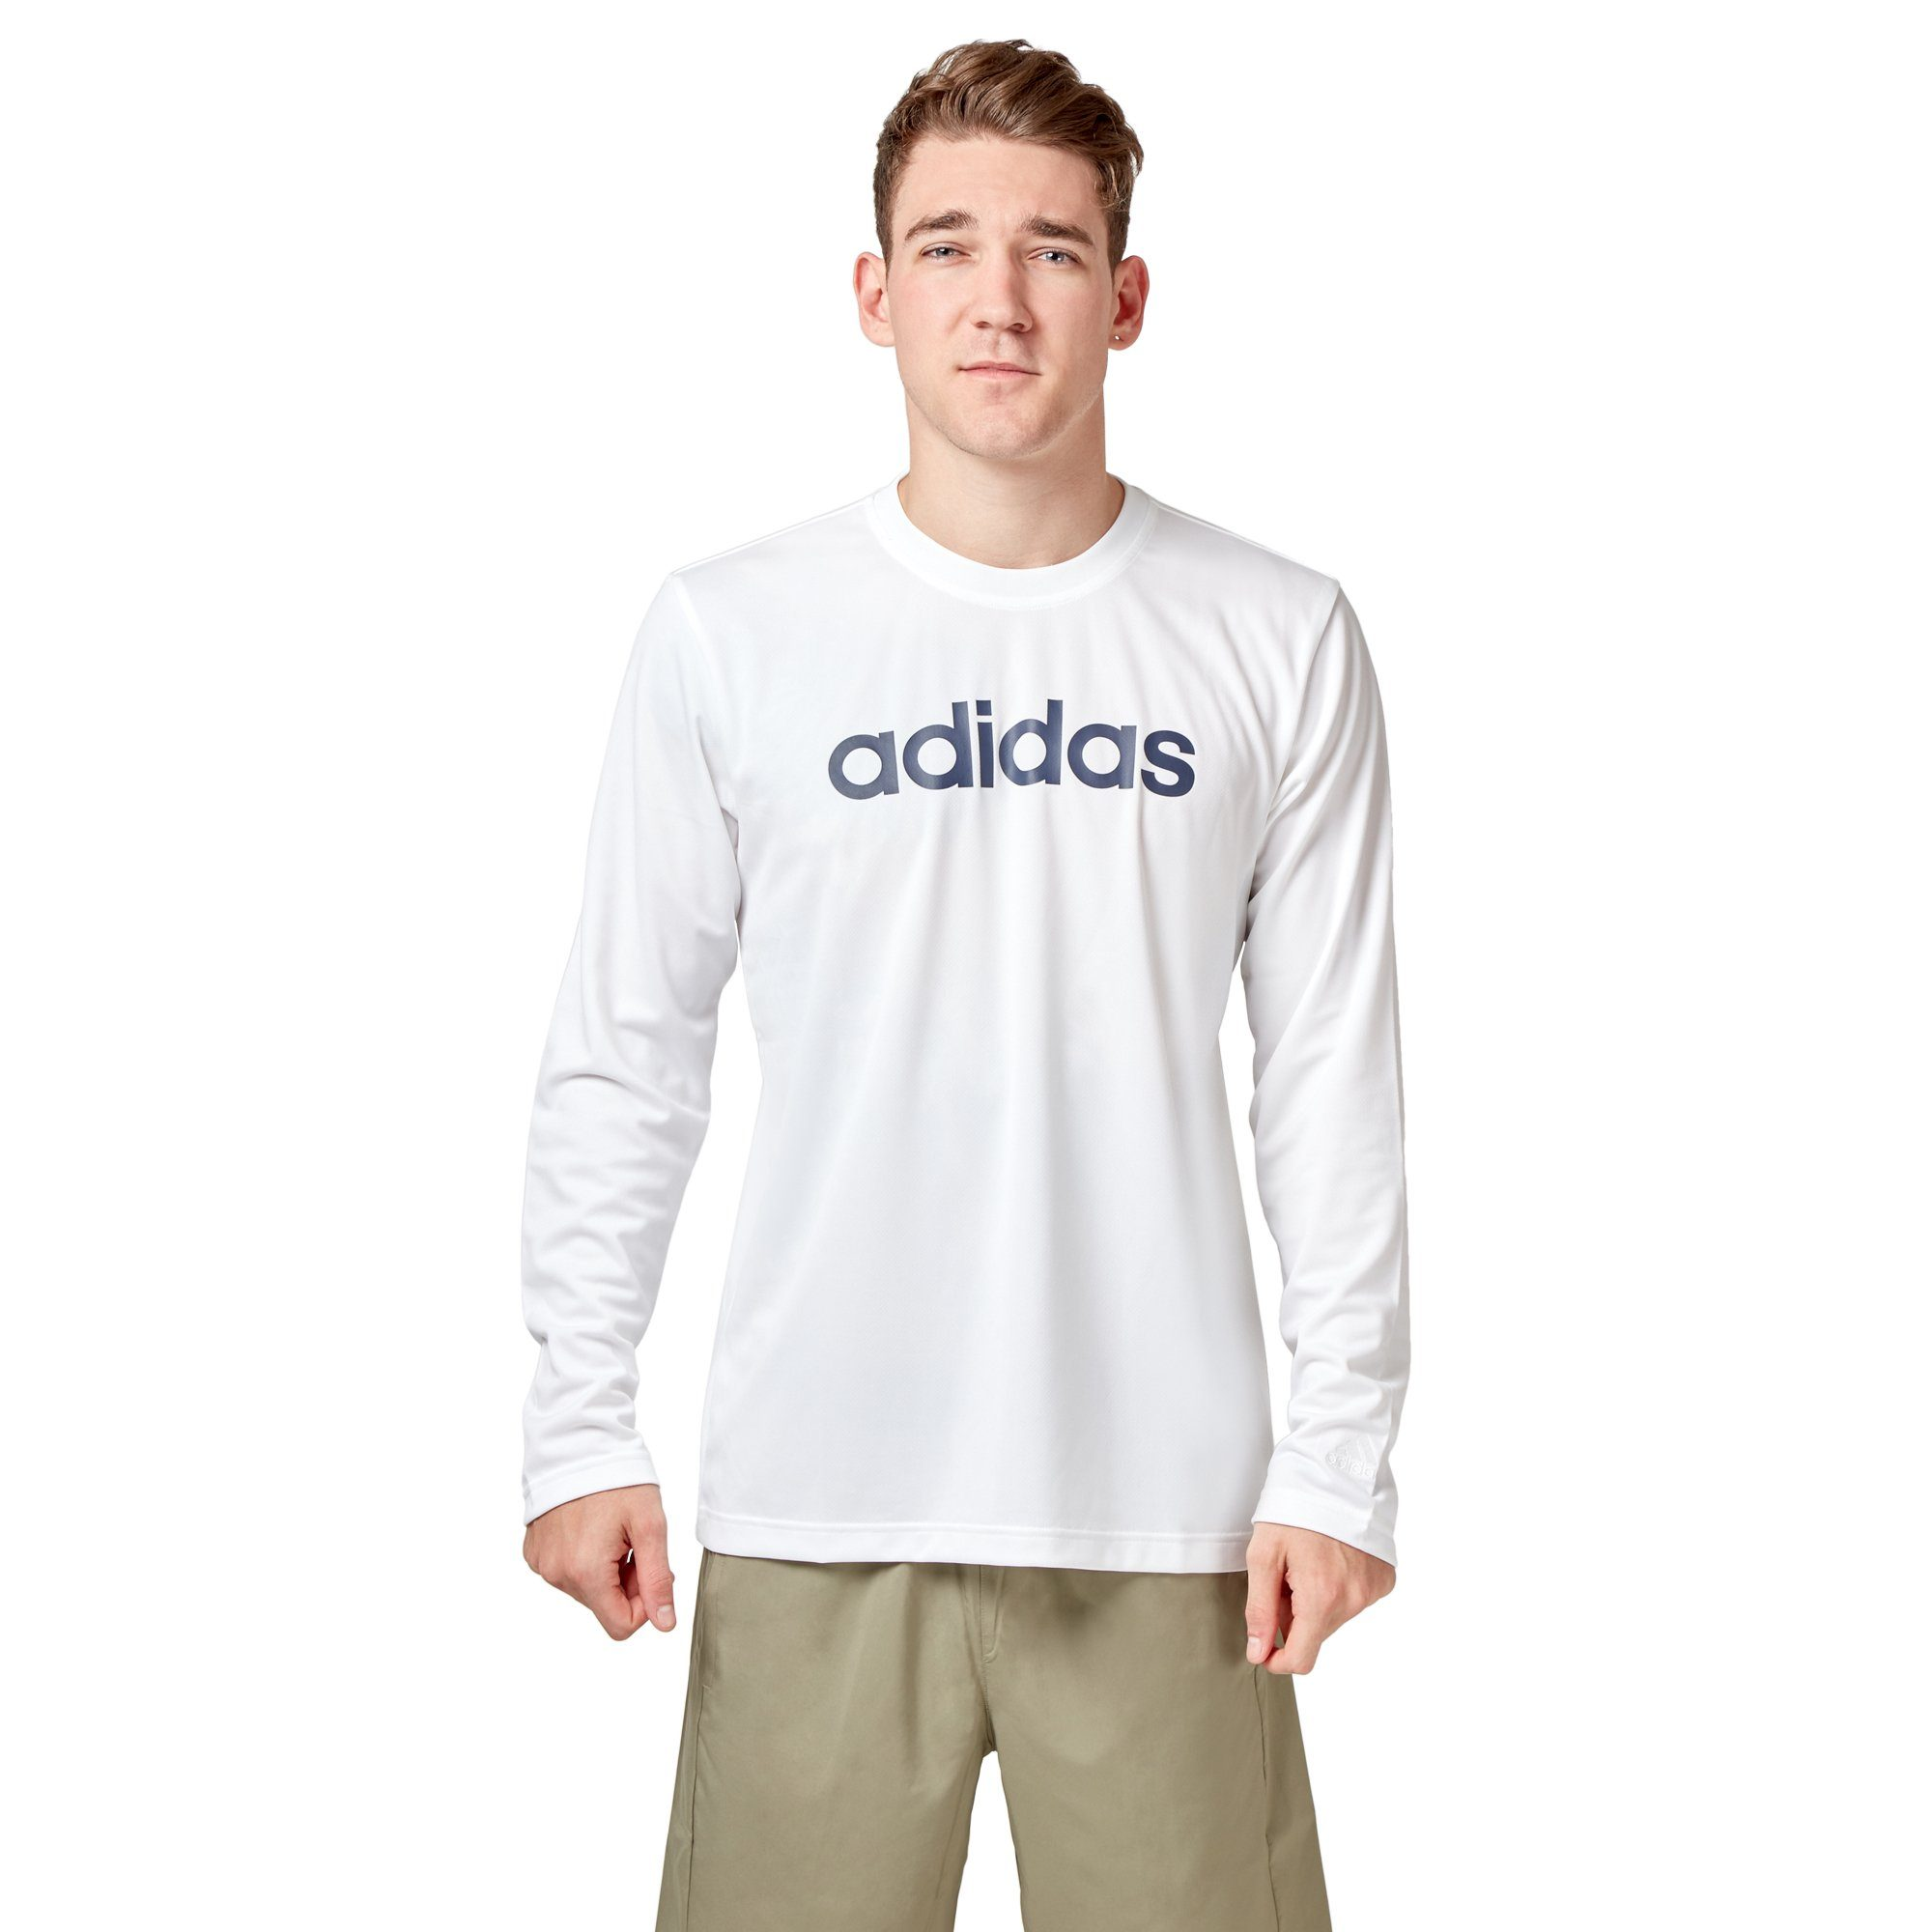 Adidas Men's Logo Long Sleeve Tee - White SportsPower Geelong  (2012420079675)